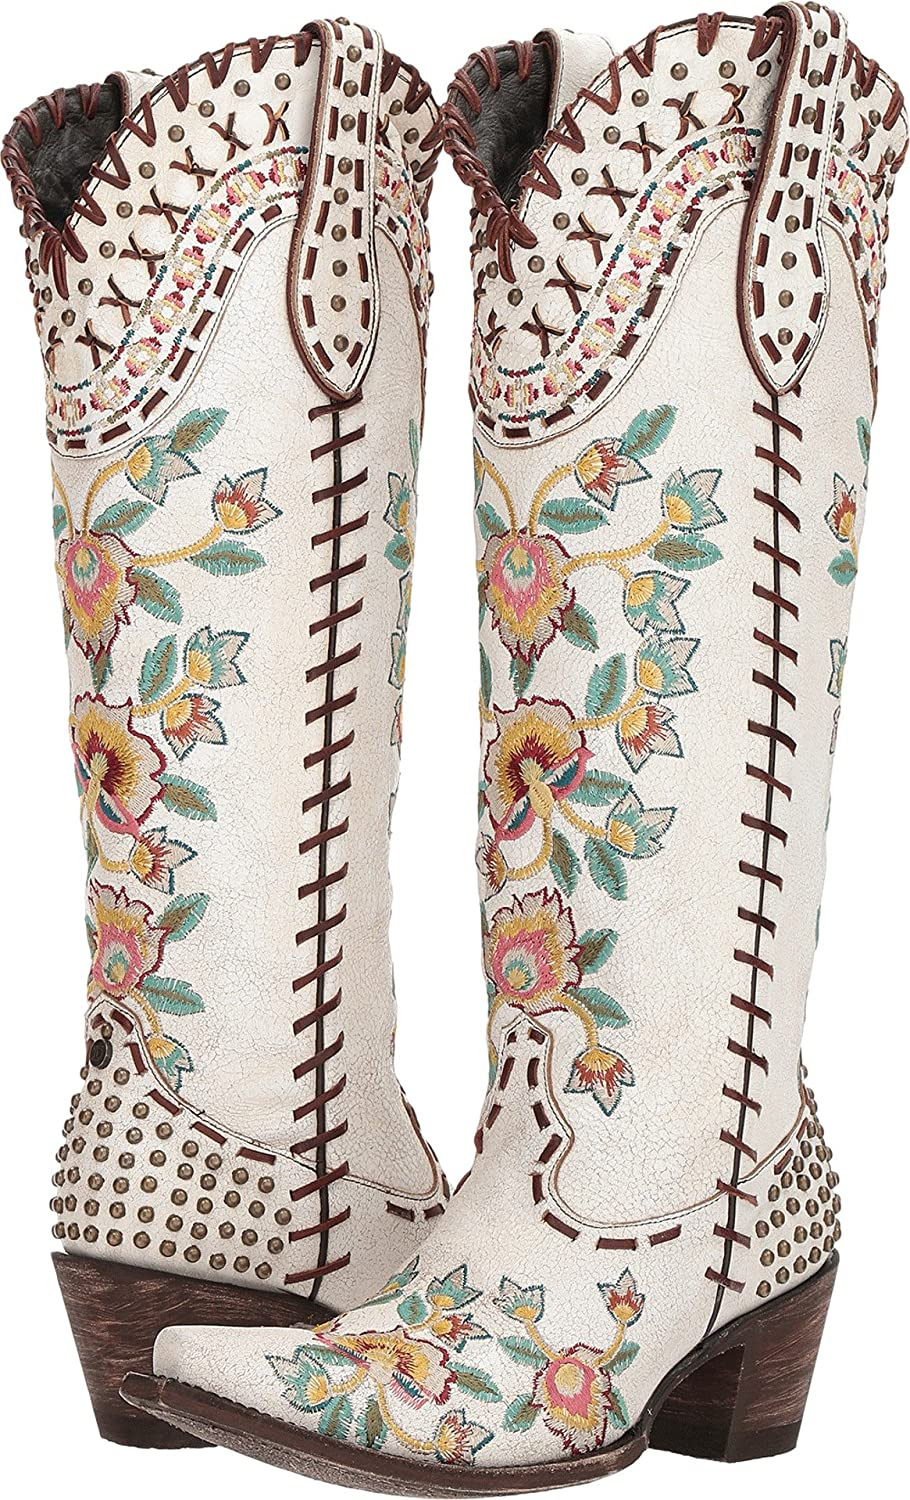 Double D Ranchwear by Old Gringo Womens Almost Famous B078NGY3Q5 7 B(M) US|Crackled Taupe